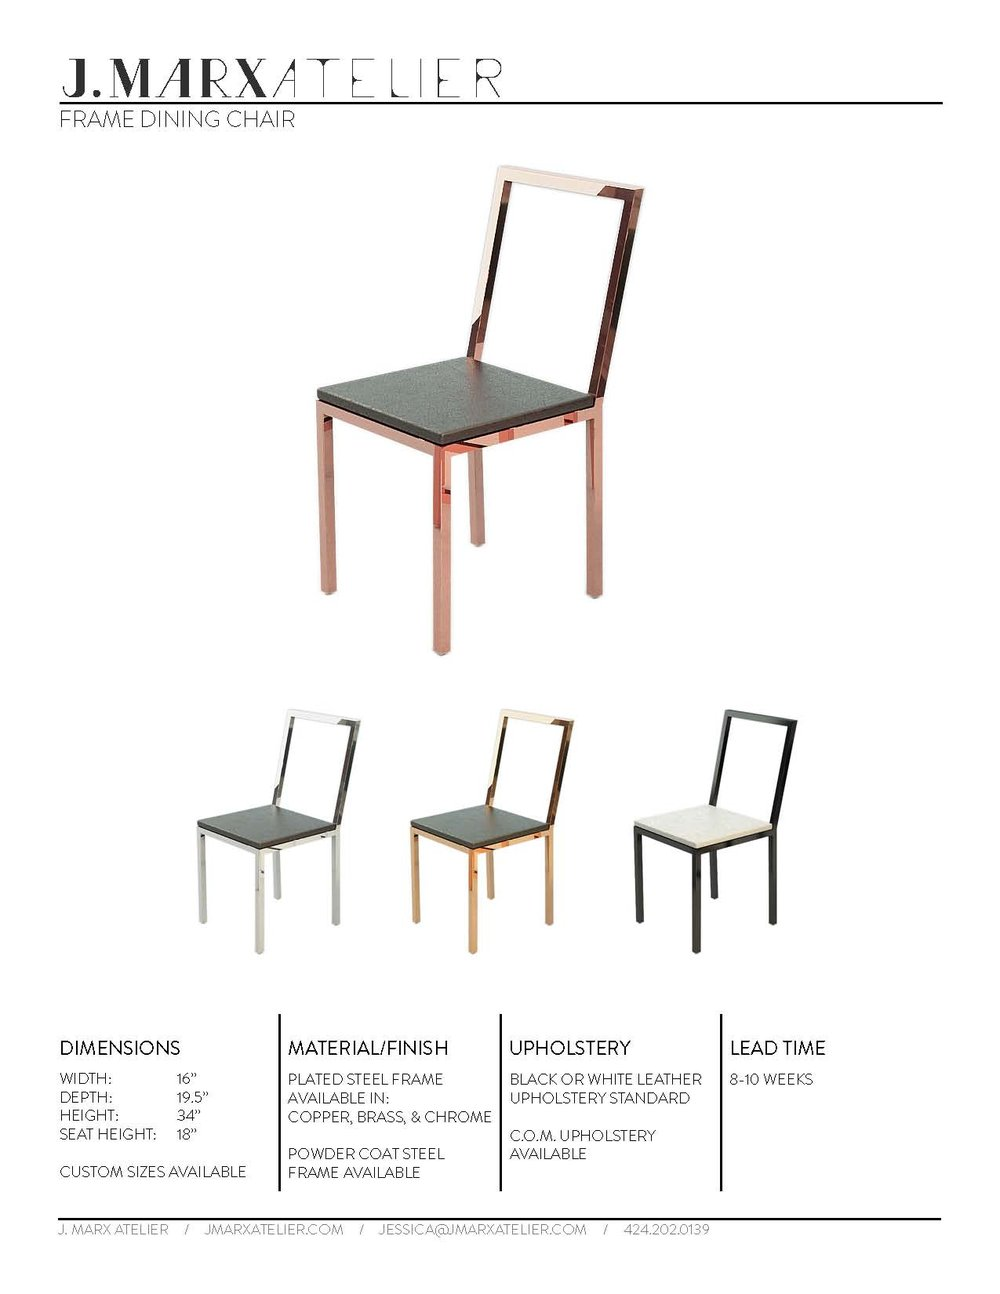 Frame Dining Chair.jpg